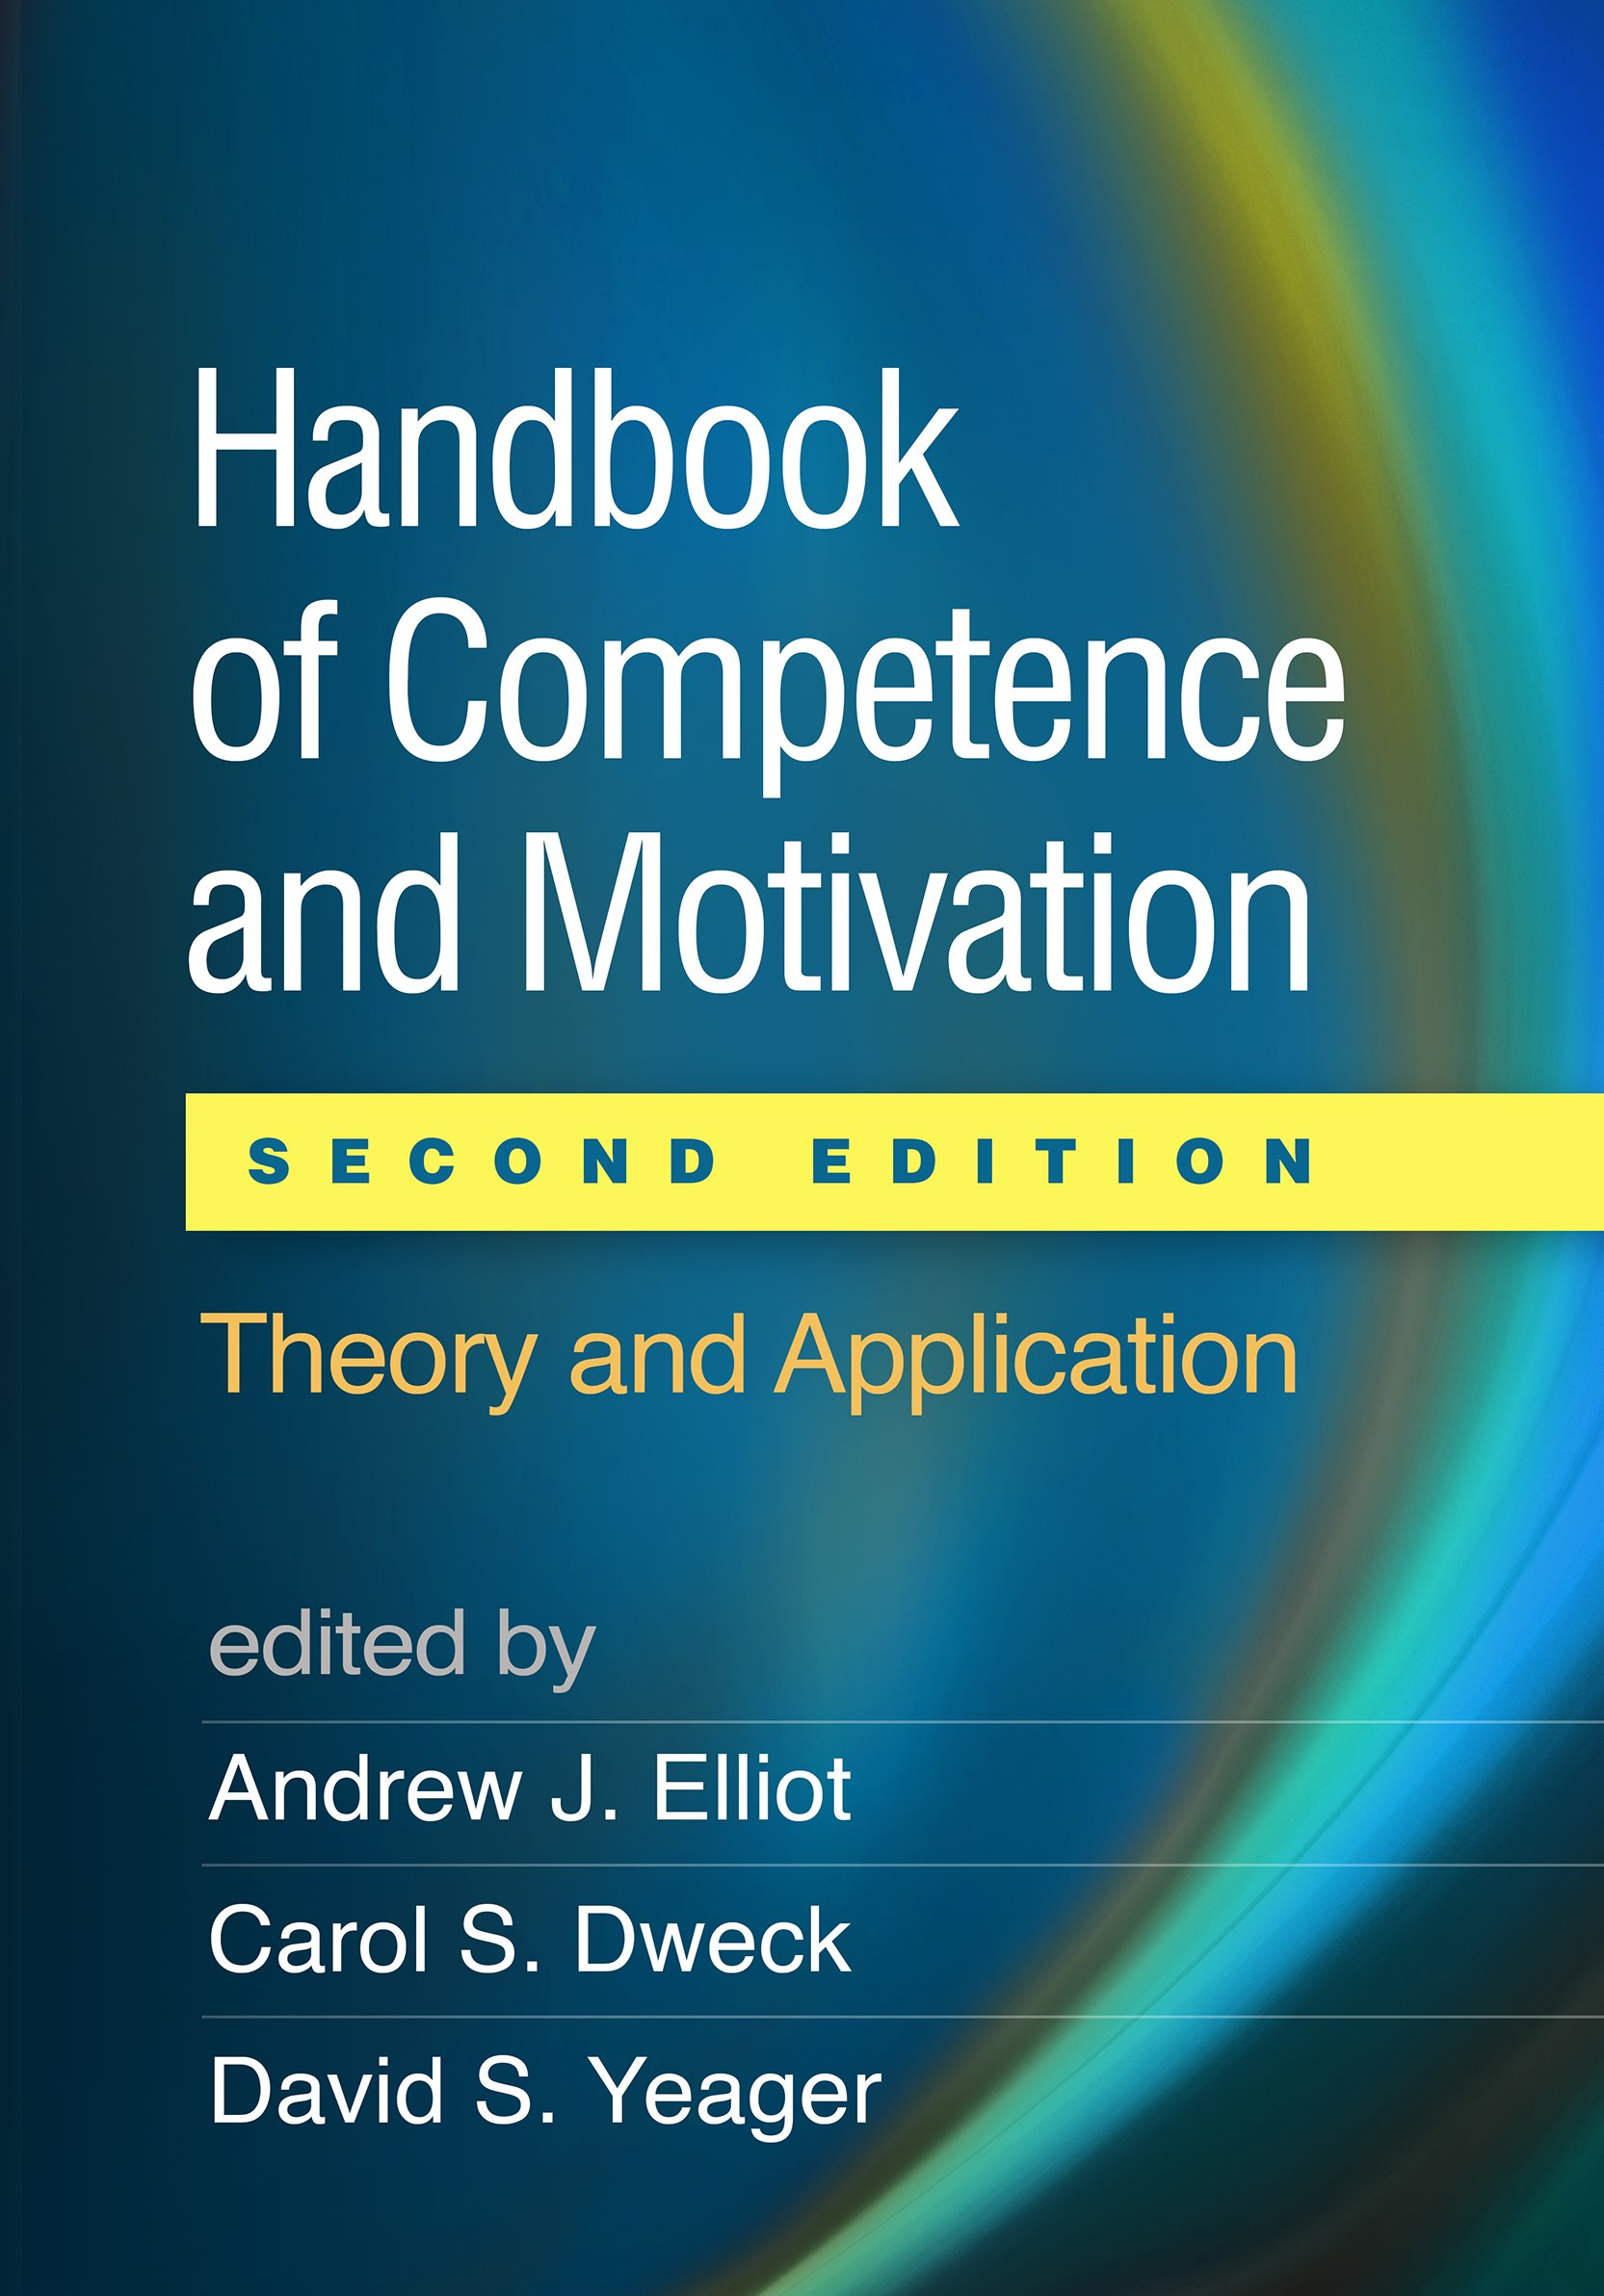 Handbook of Competence and Motivation, Second Edition: Theory and Application by The Guilford Press